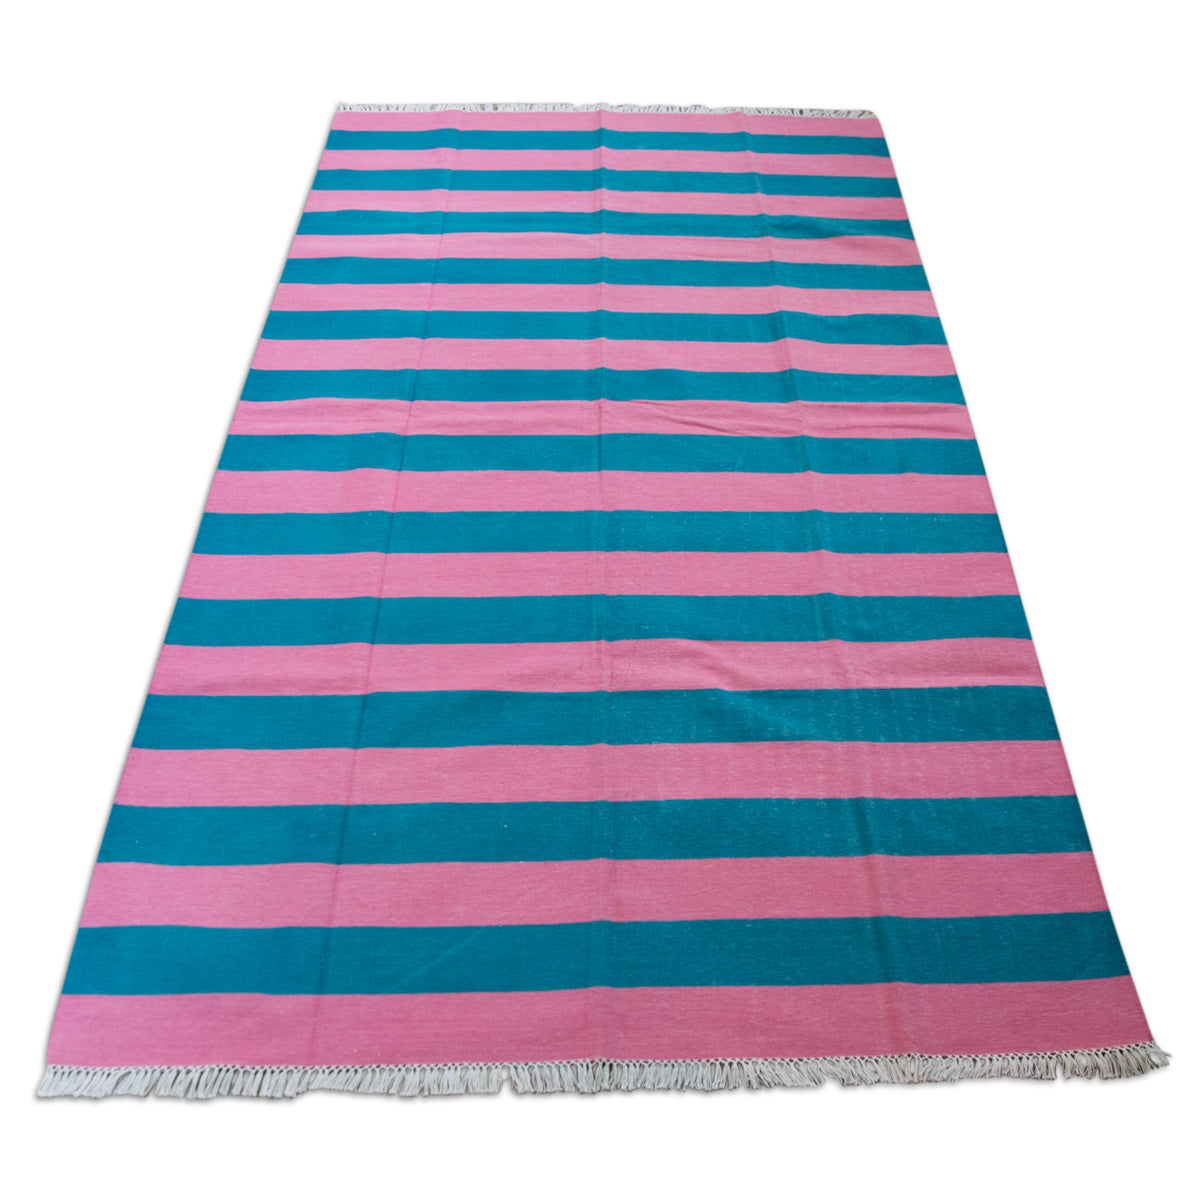 Striped Dhurrie Rug 5' x 8'